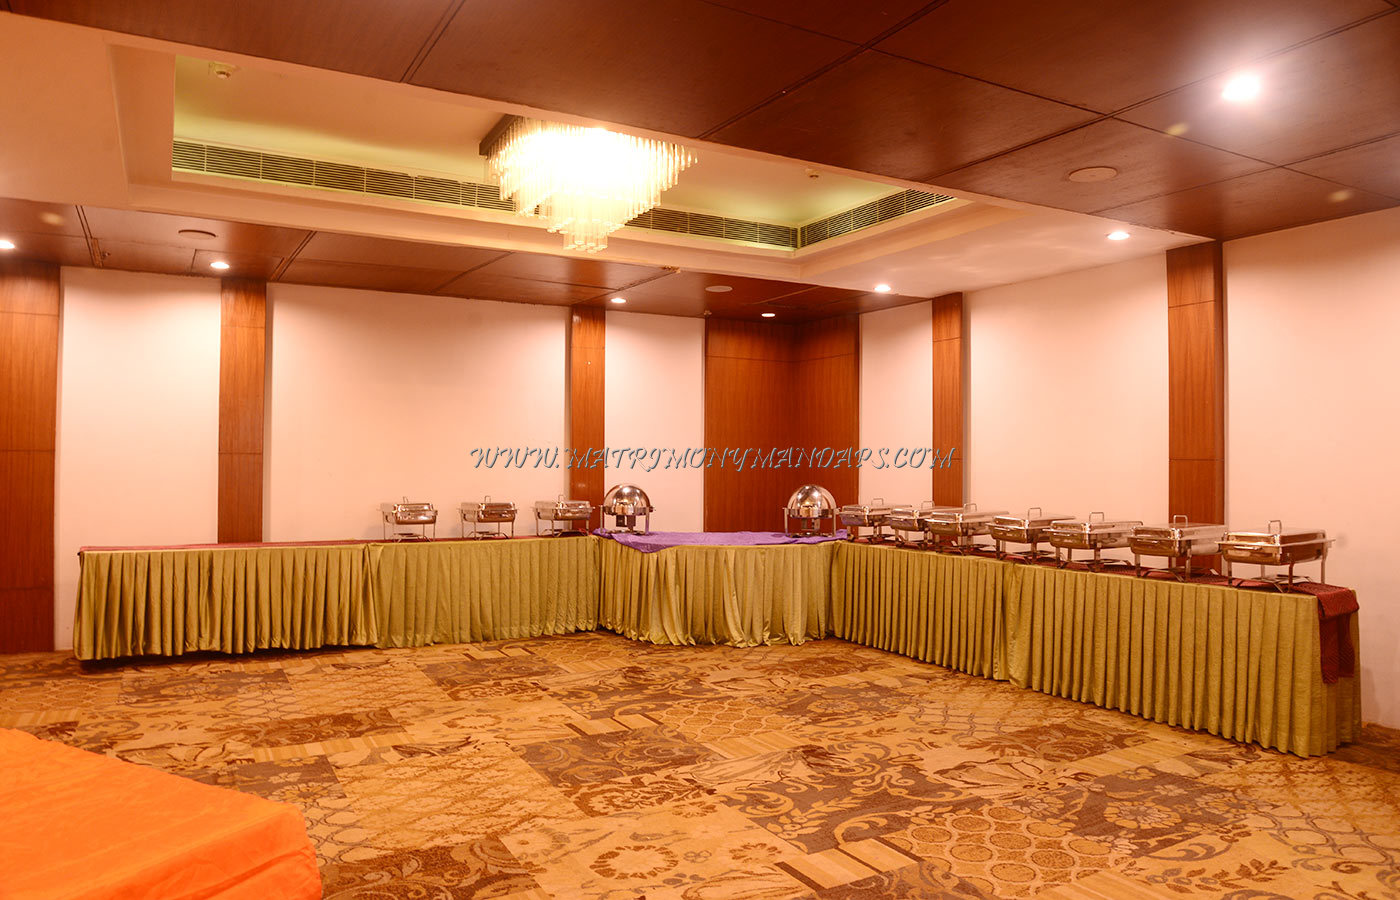 Find the availability of the V7 Hotel Cliff Hall (A/C) in Porur, Chennai and avail special offers